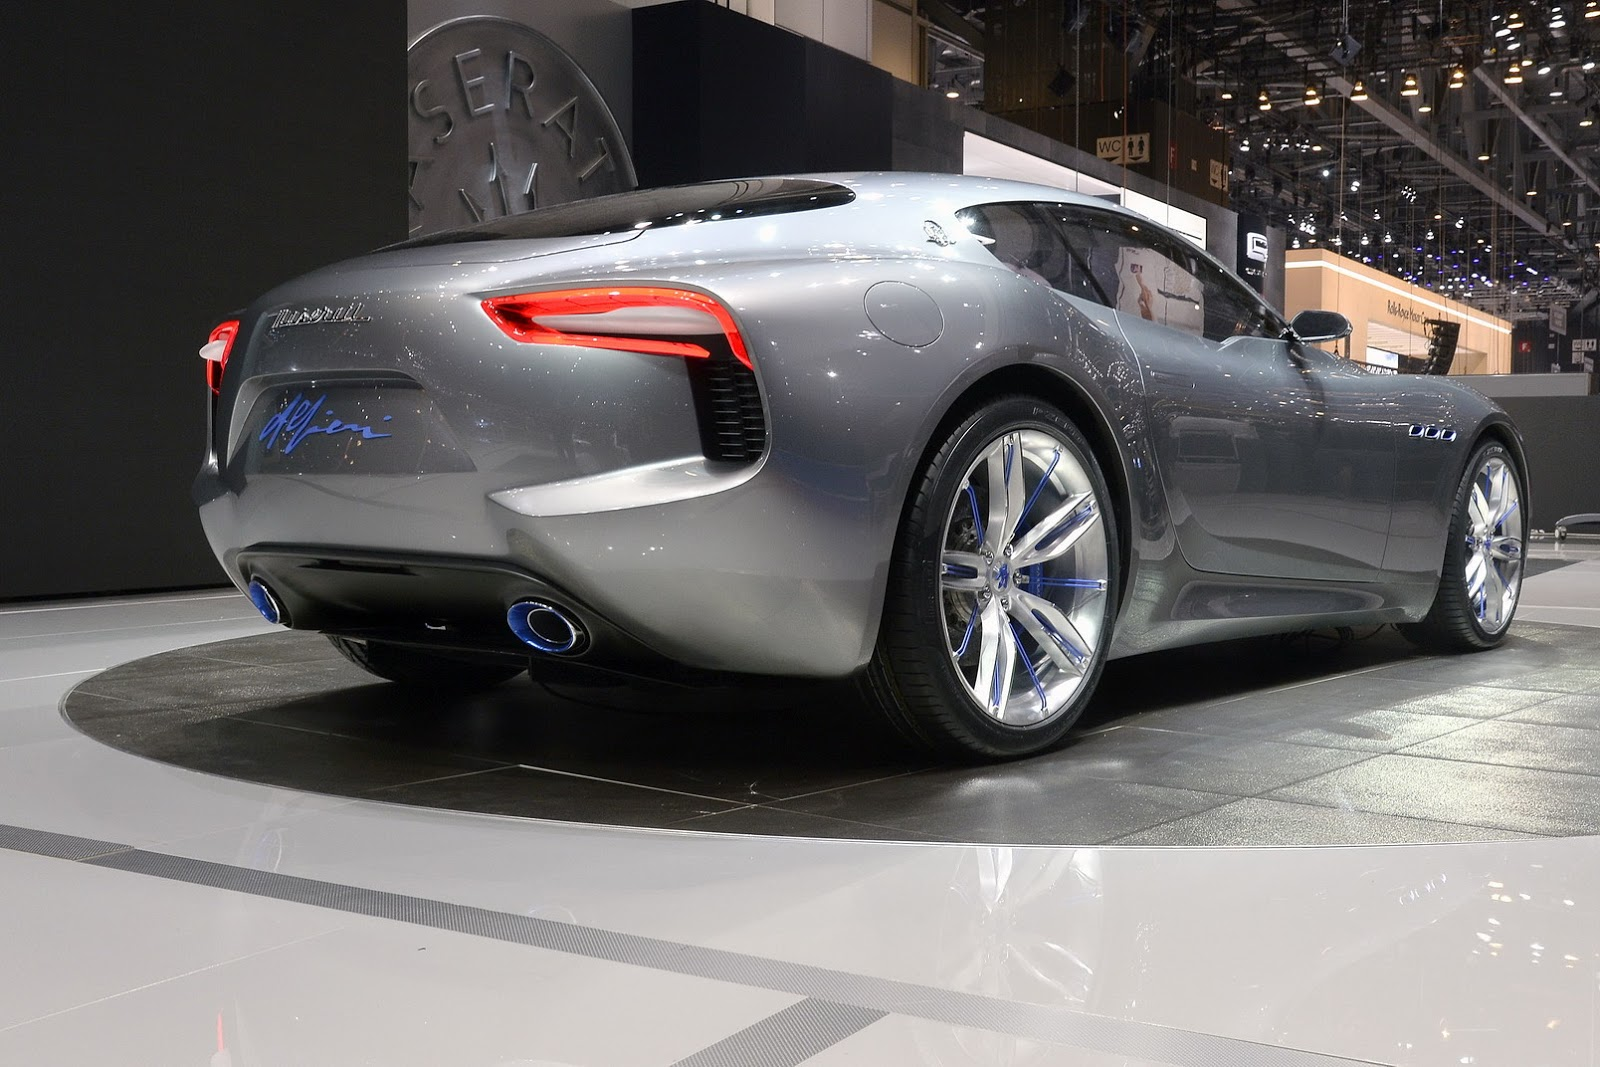 Maserati To Go Without Any Sports Cars Or Gts Until 2020